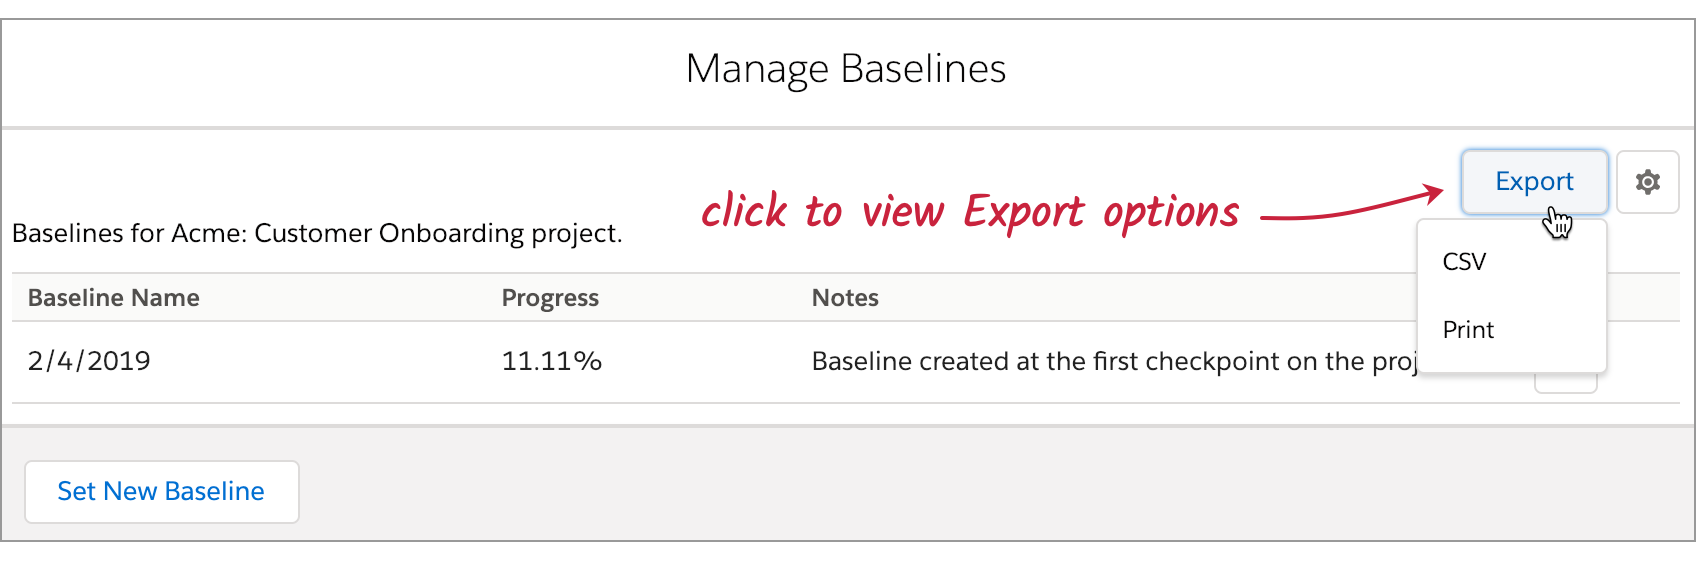 manage_baselines_export__1_.png